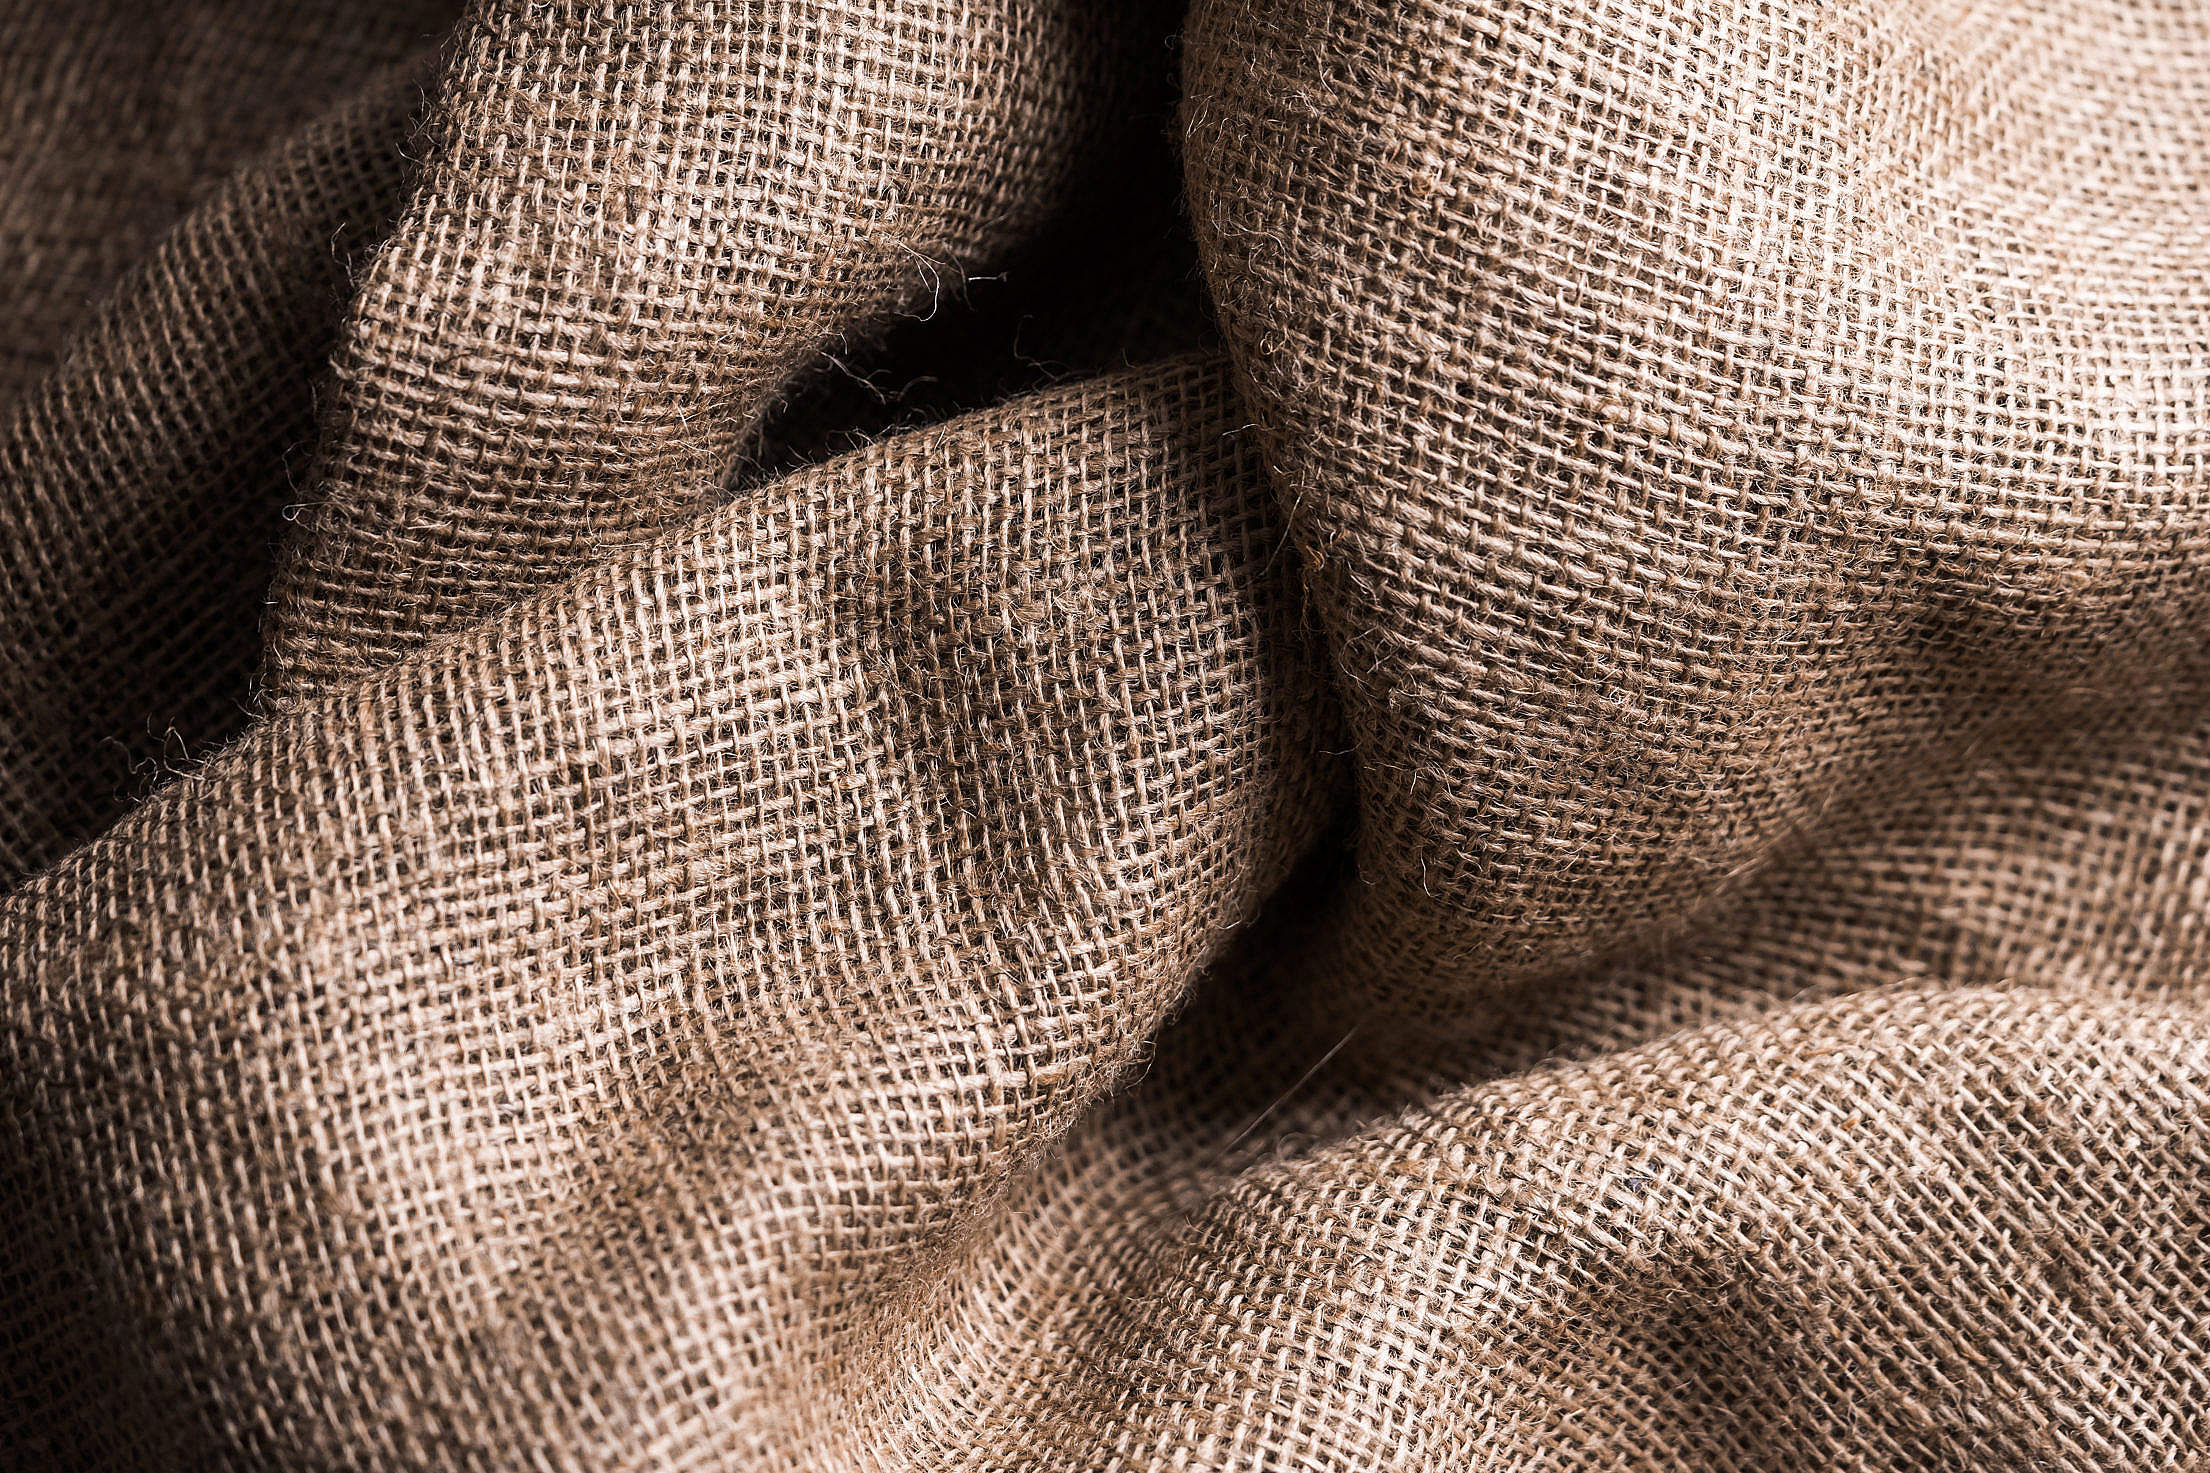 (click to download) Sackcloth FREE Stock Photo